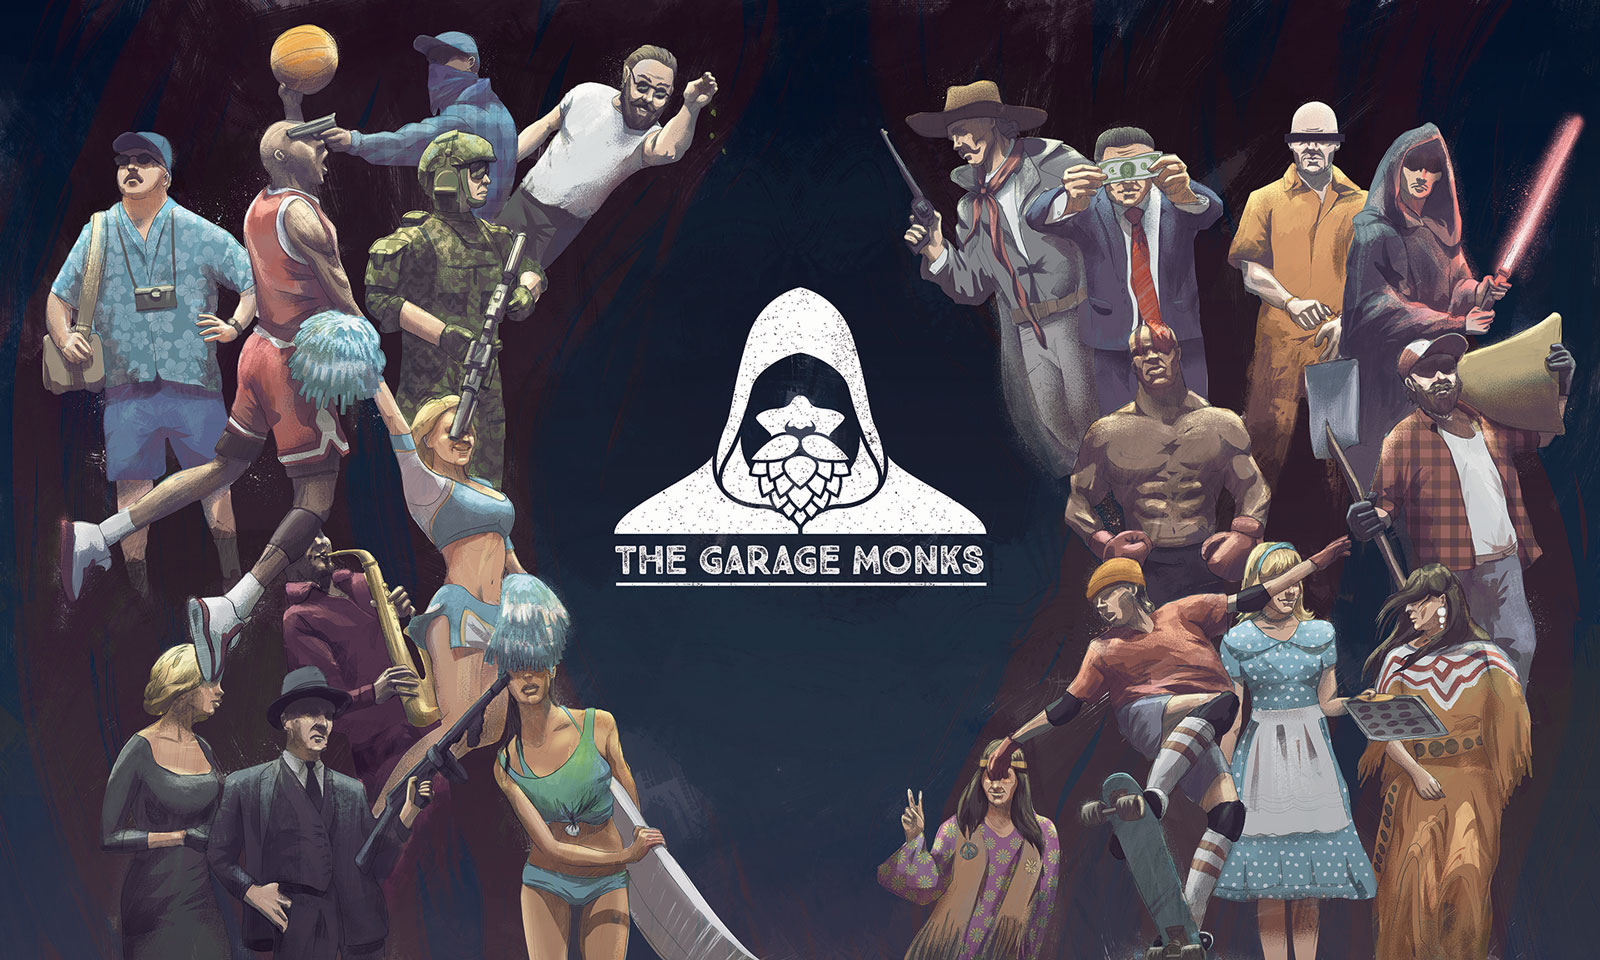 The Garage Monks illustration showing various american popculture rooted characters by Jakub Cichecki